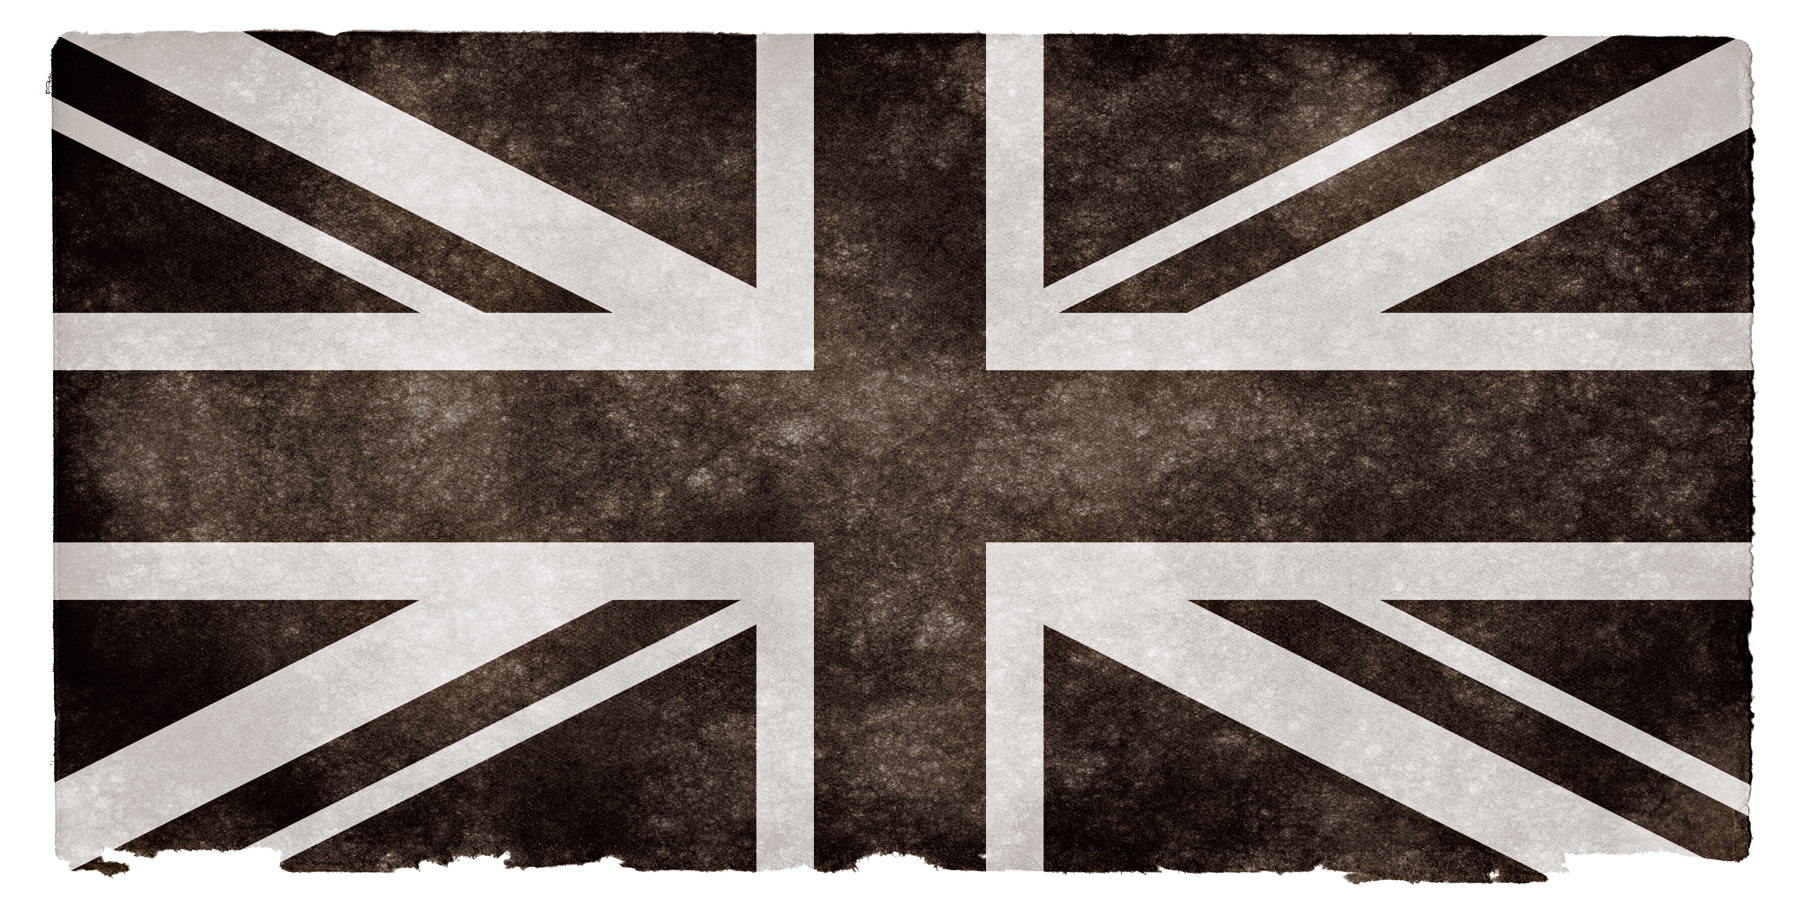 UK Grunge Flag - Black and White, Monotone, Parchment, Paper, Page, HQ Photo